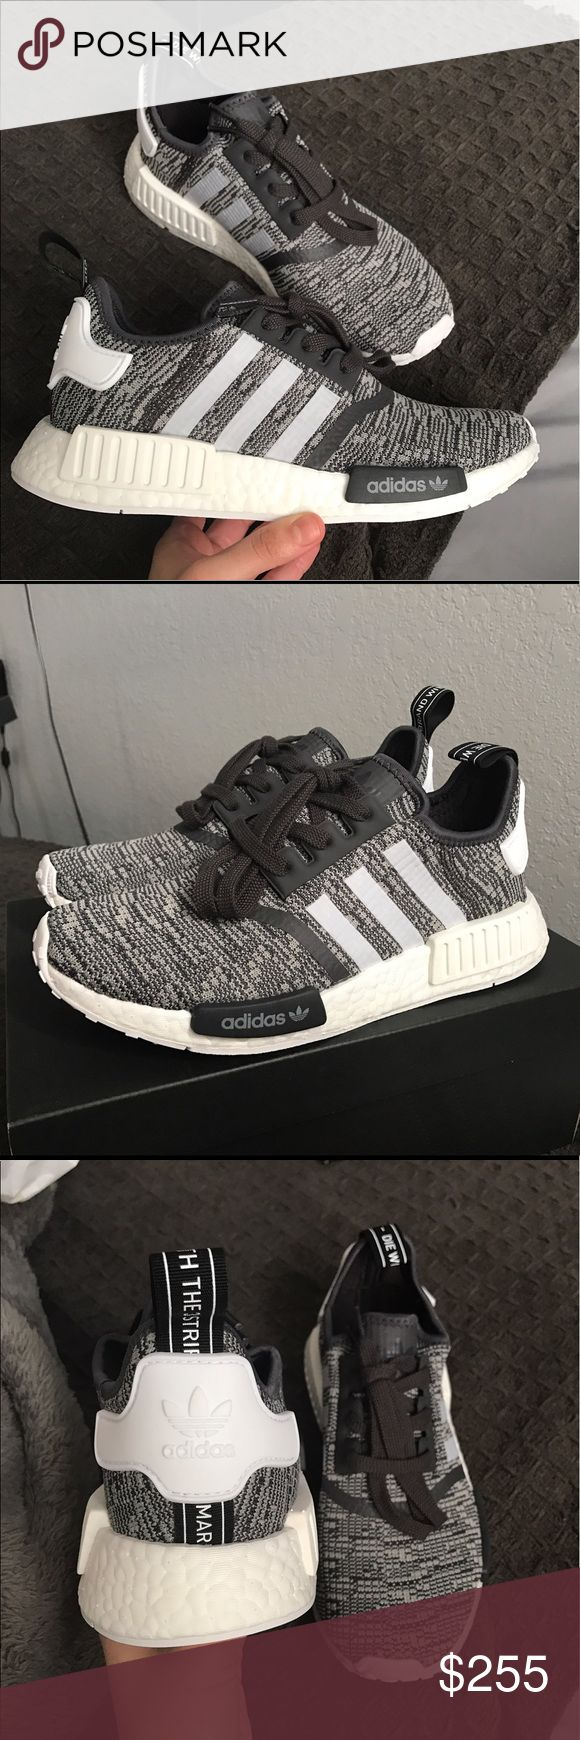 Adidas NMD r1 midnight grey/ white Brand new comes with original box Adidas Shoes Sneakers